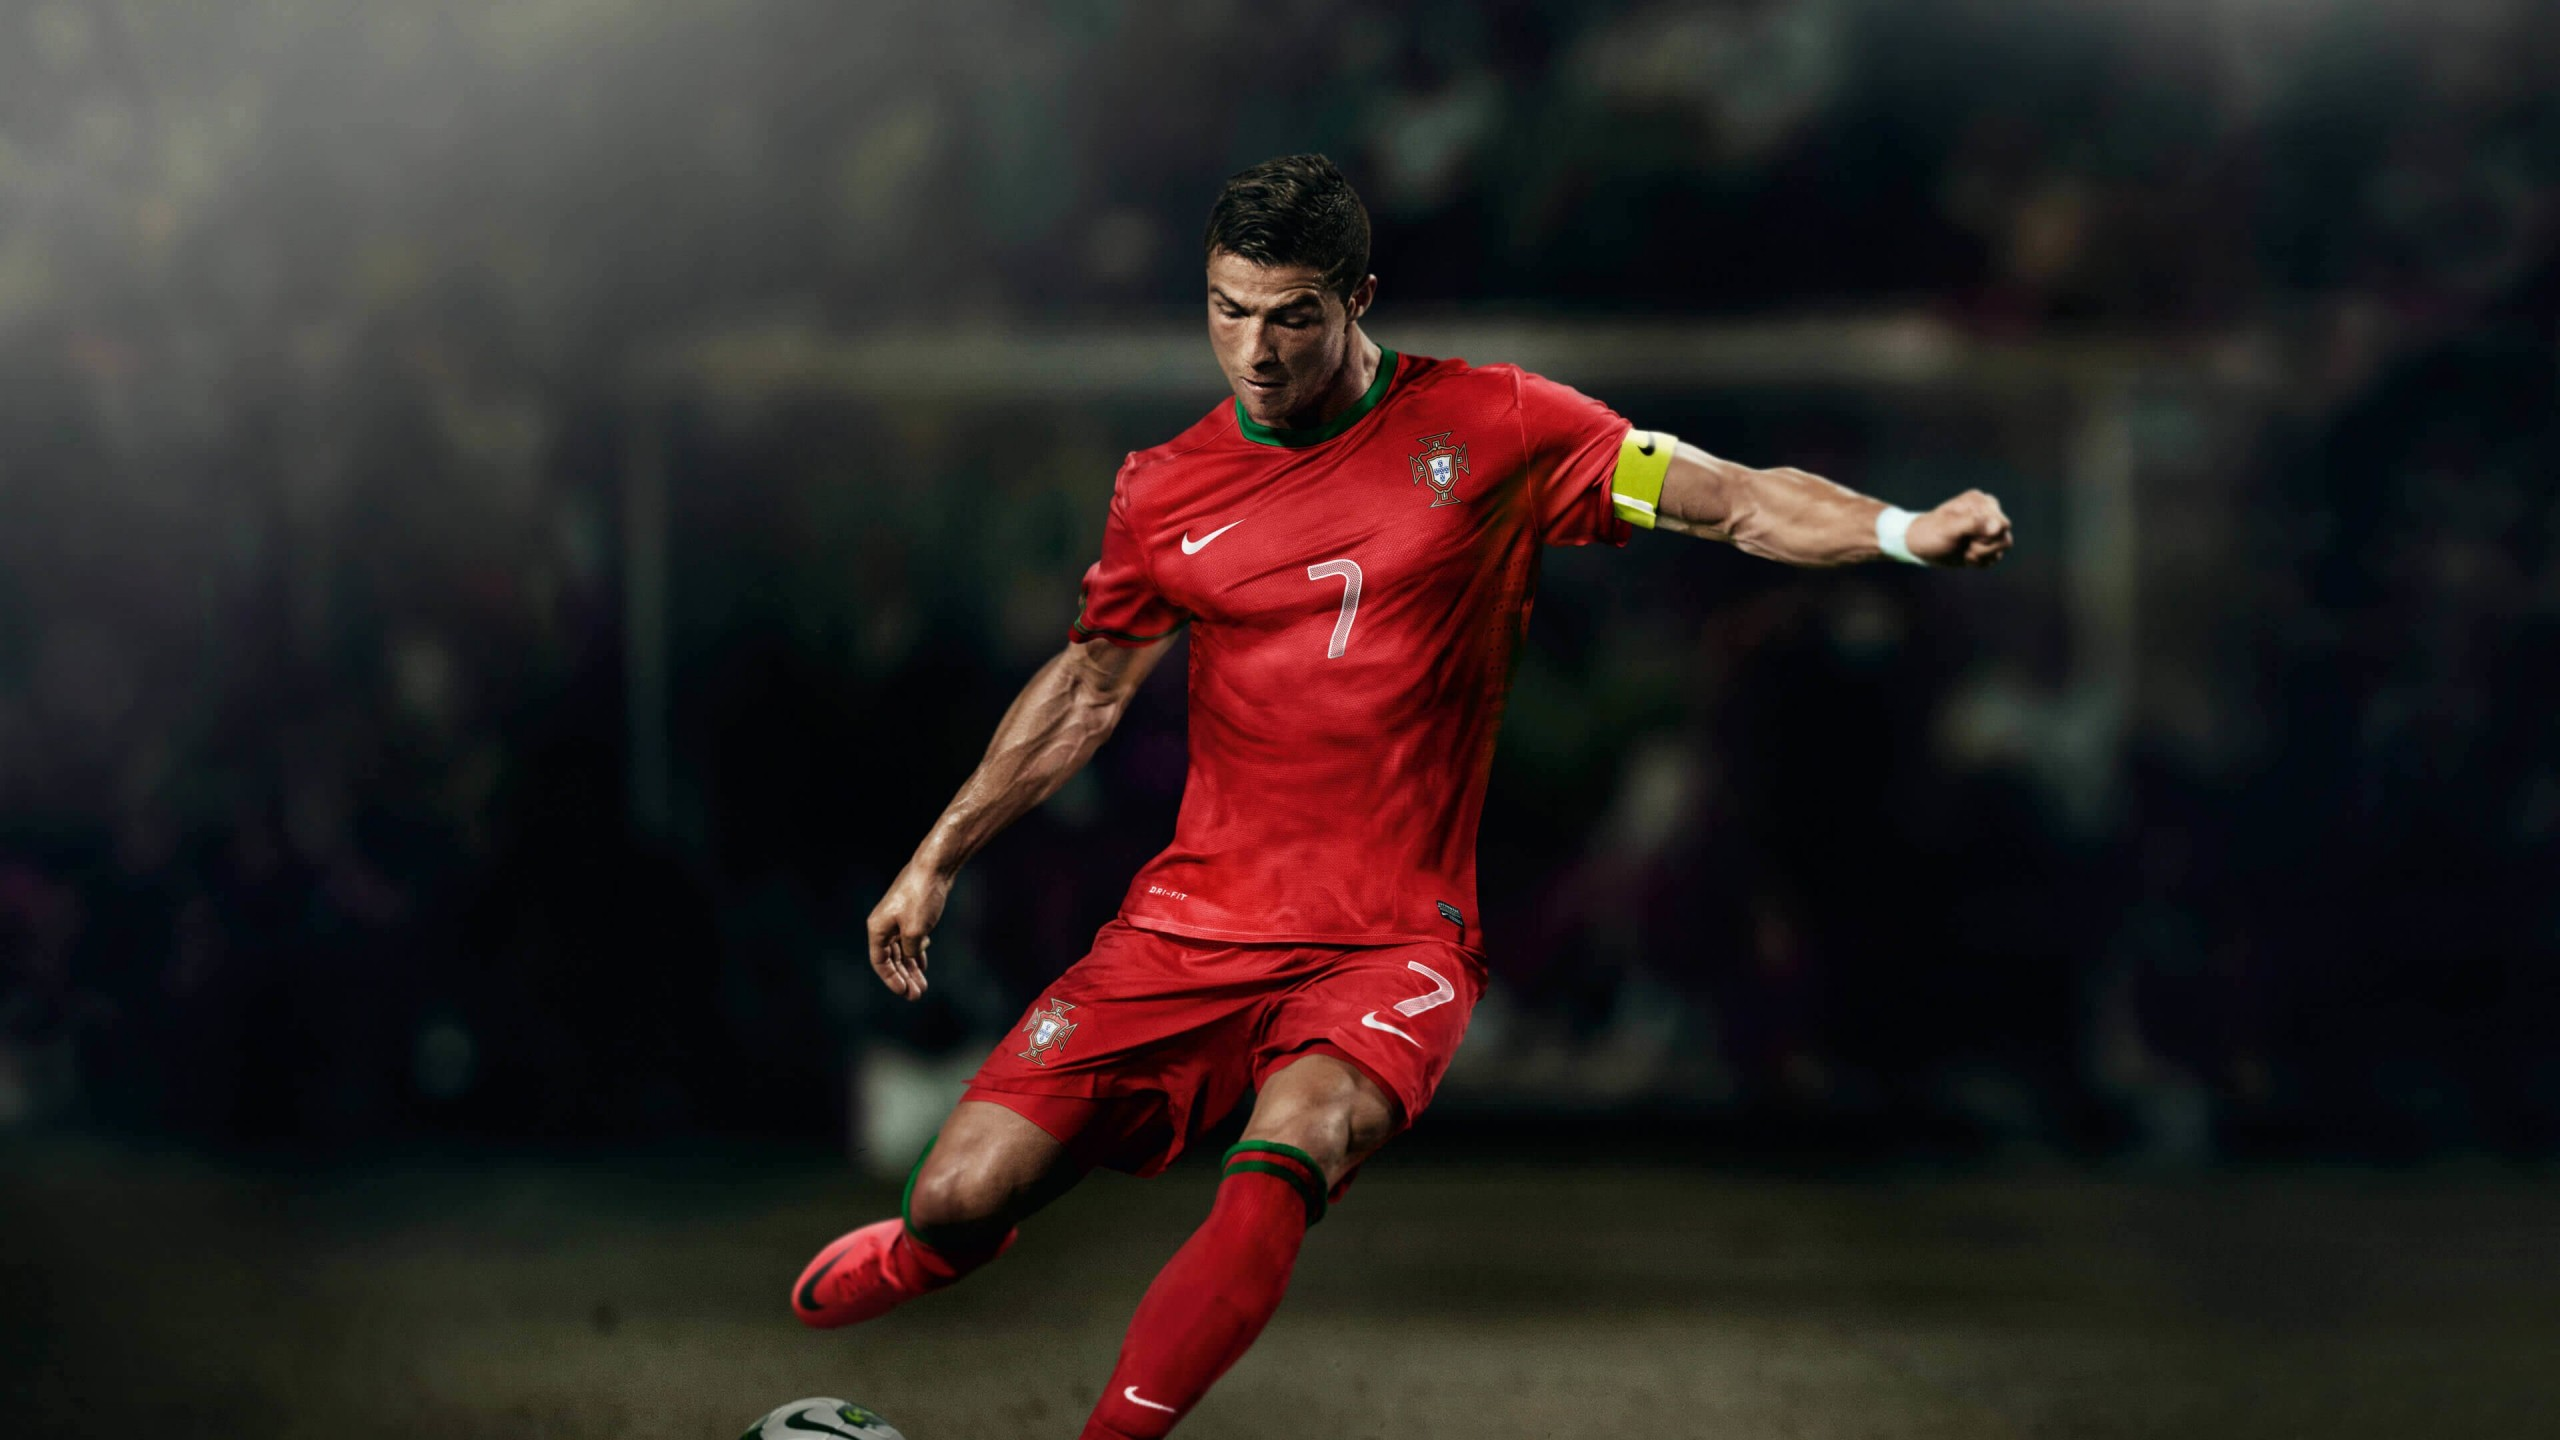 Cristiano Ronaldo In Portugal Jersey Wallpaper for Social Media YouTube Channel Art